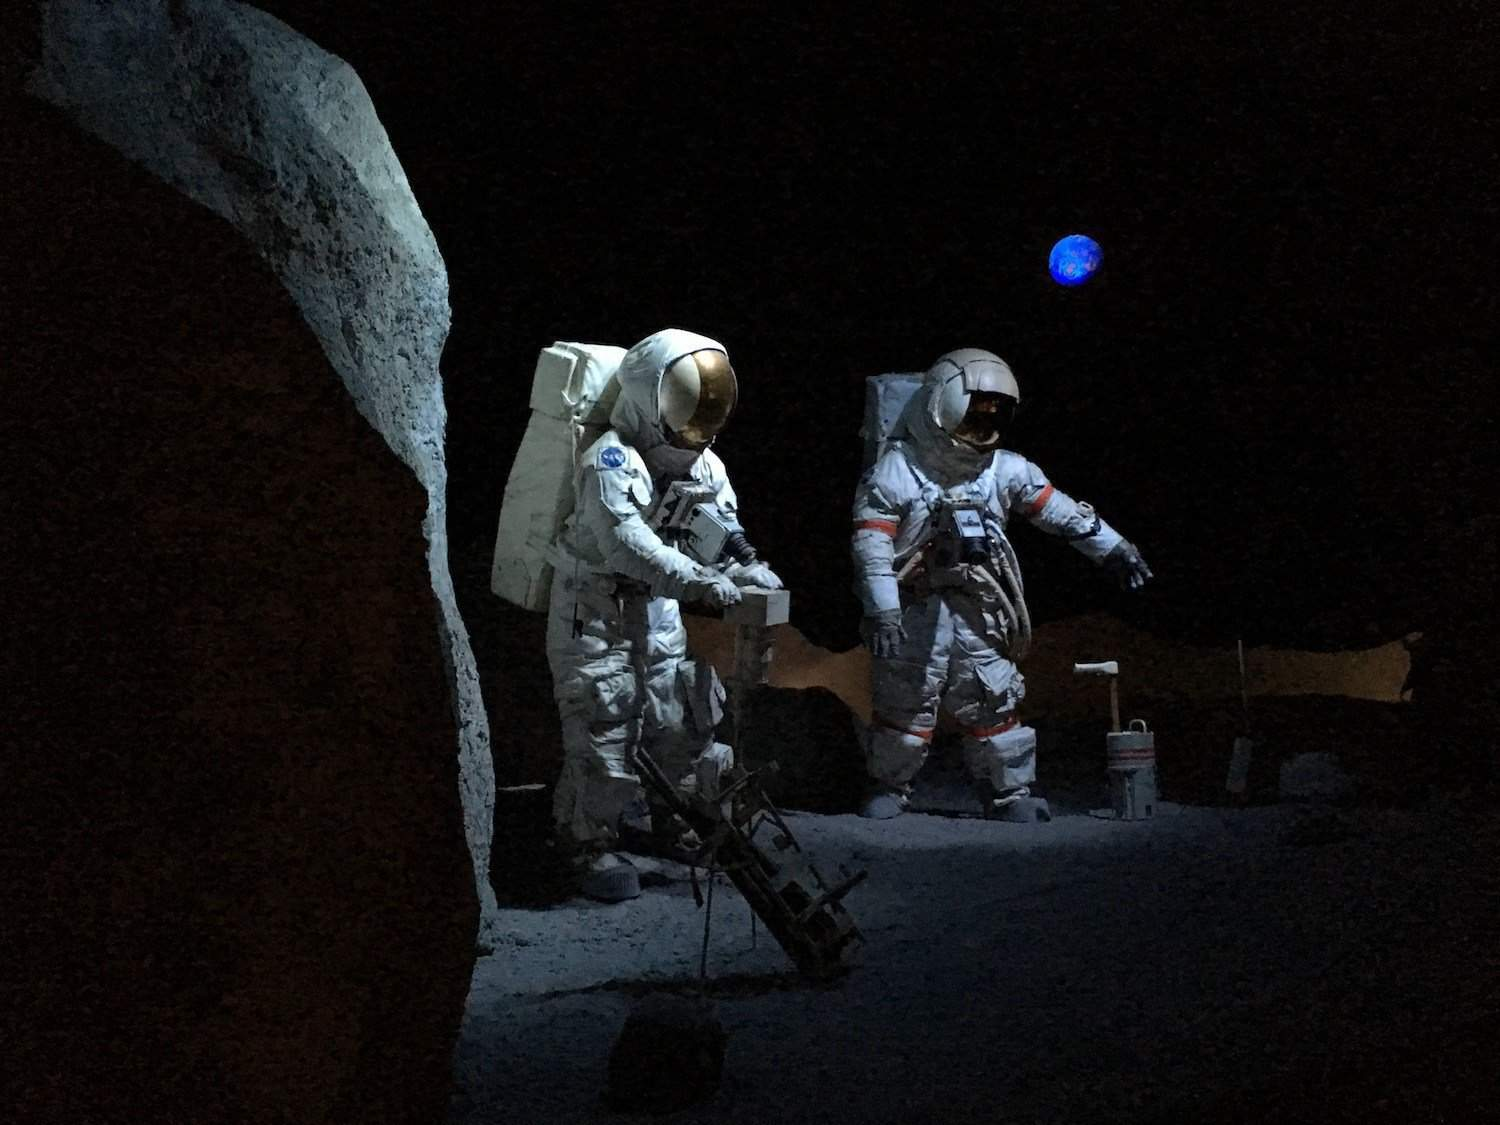 Moon Diorama at Space Center Houston